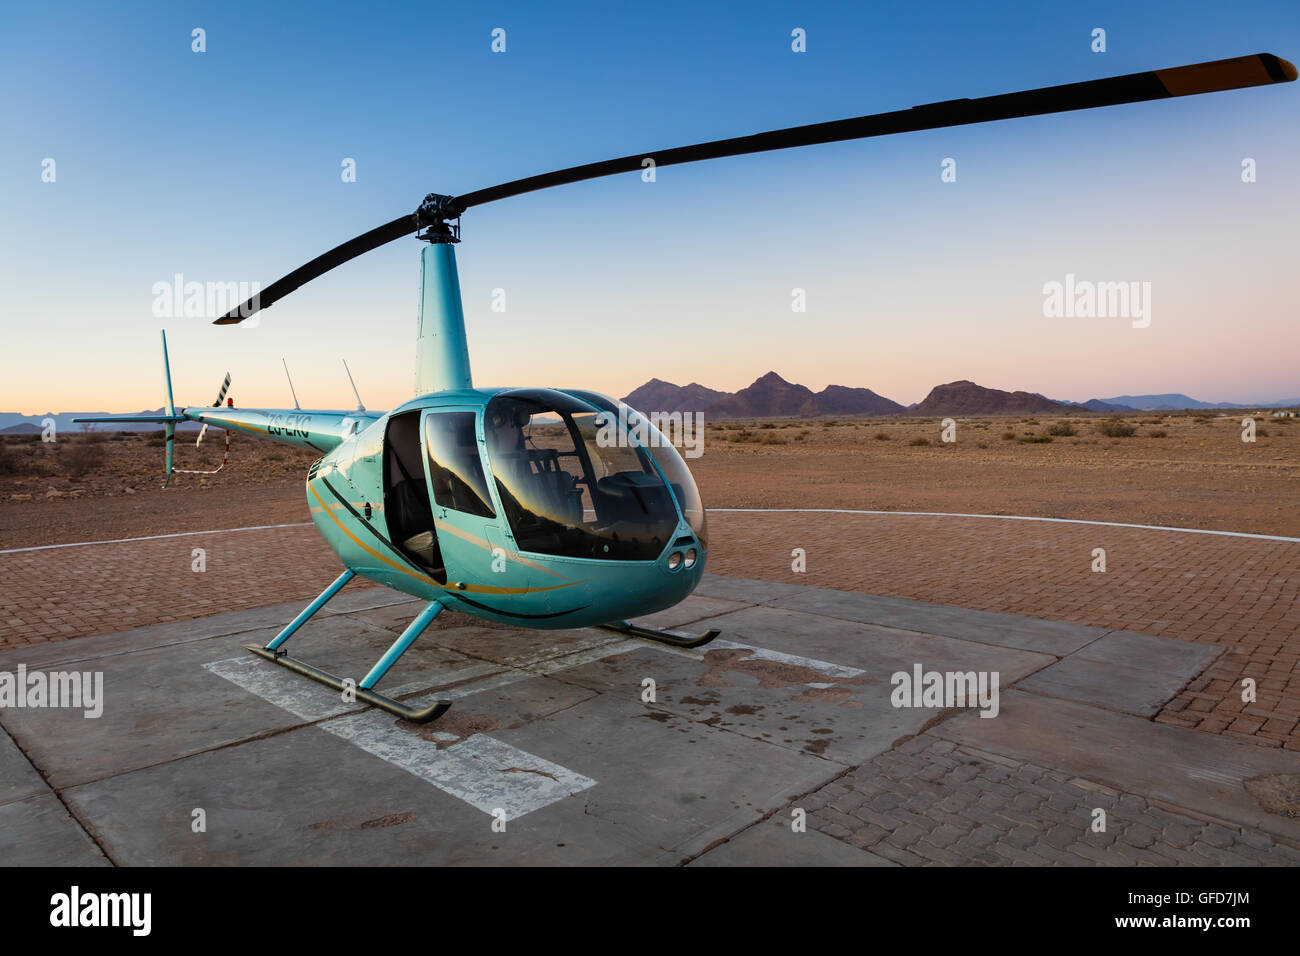 Sightseeing helicopter in the Namib-Naukluft National Park in Namibia. - Stock Image